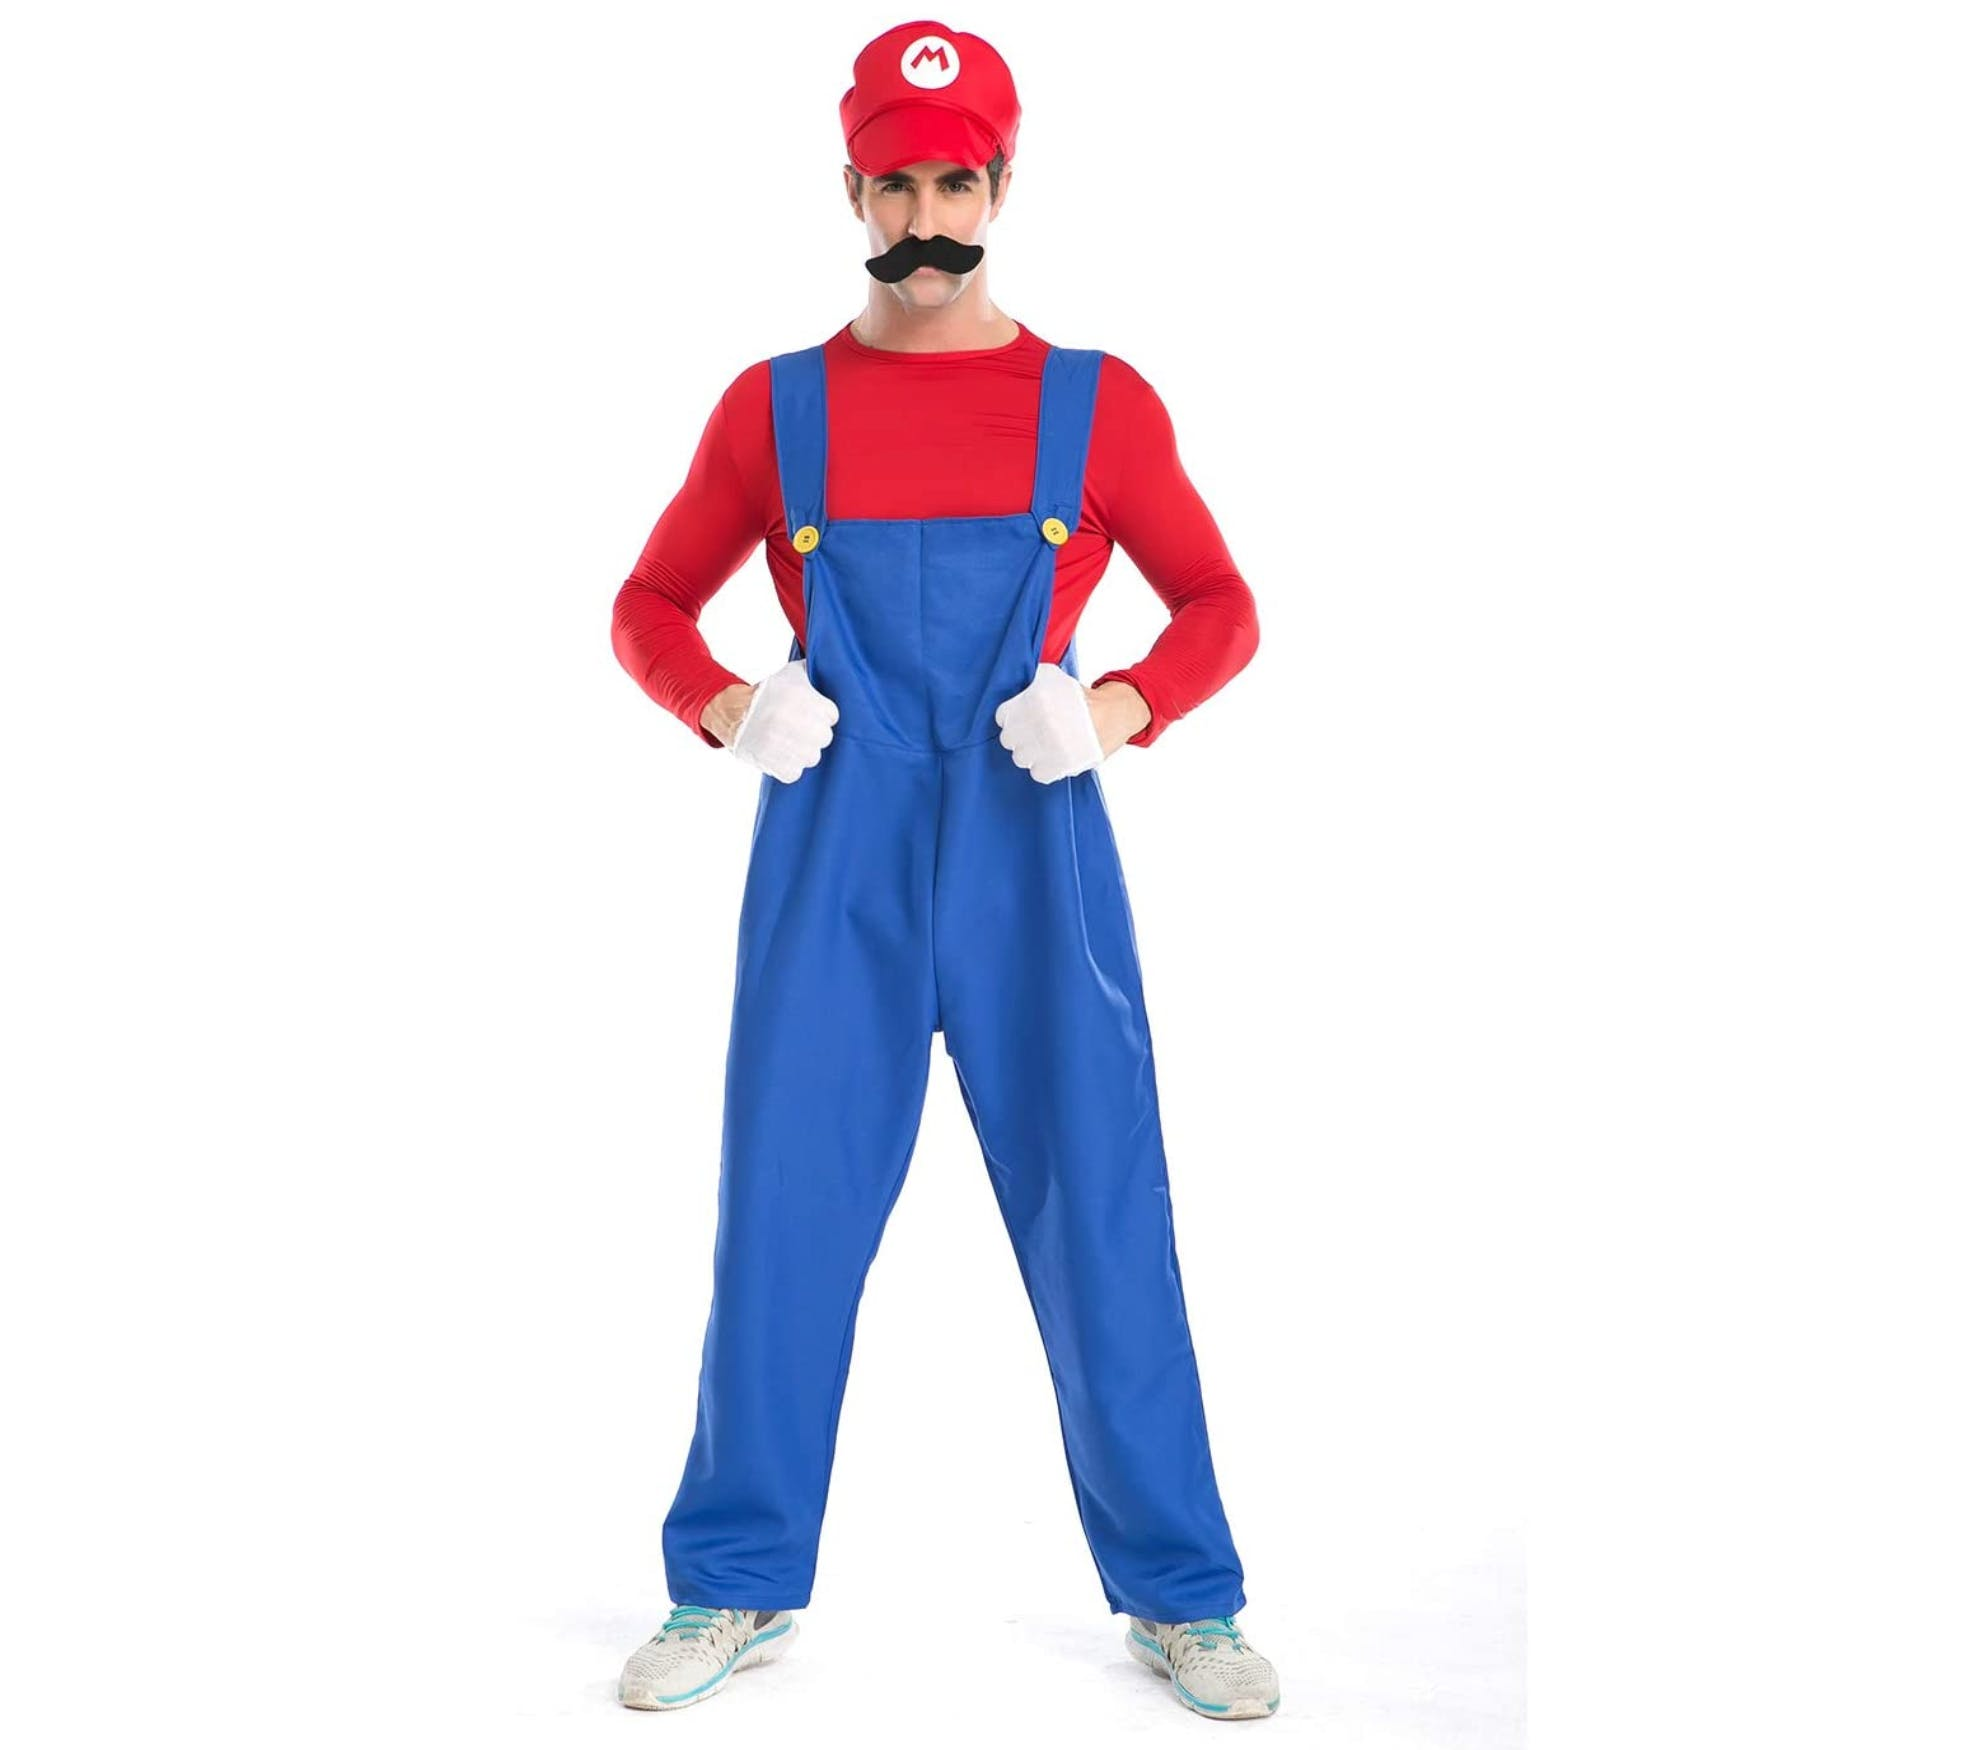 Group Halloween costumes - Super Mario costume, a man in blue overalls, with a red shirt, puffy gloves, a red hat with a M on it, and puffy gloves. There is a moustache on his face.